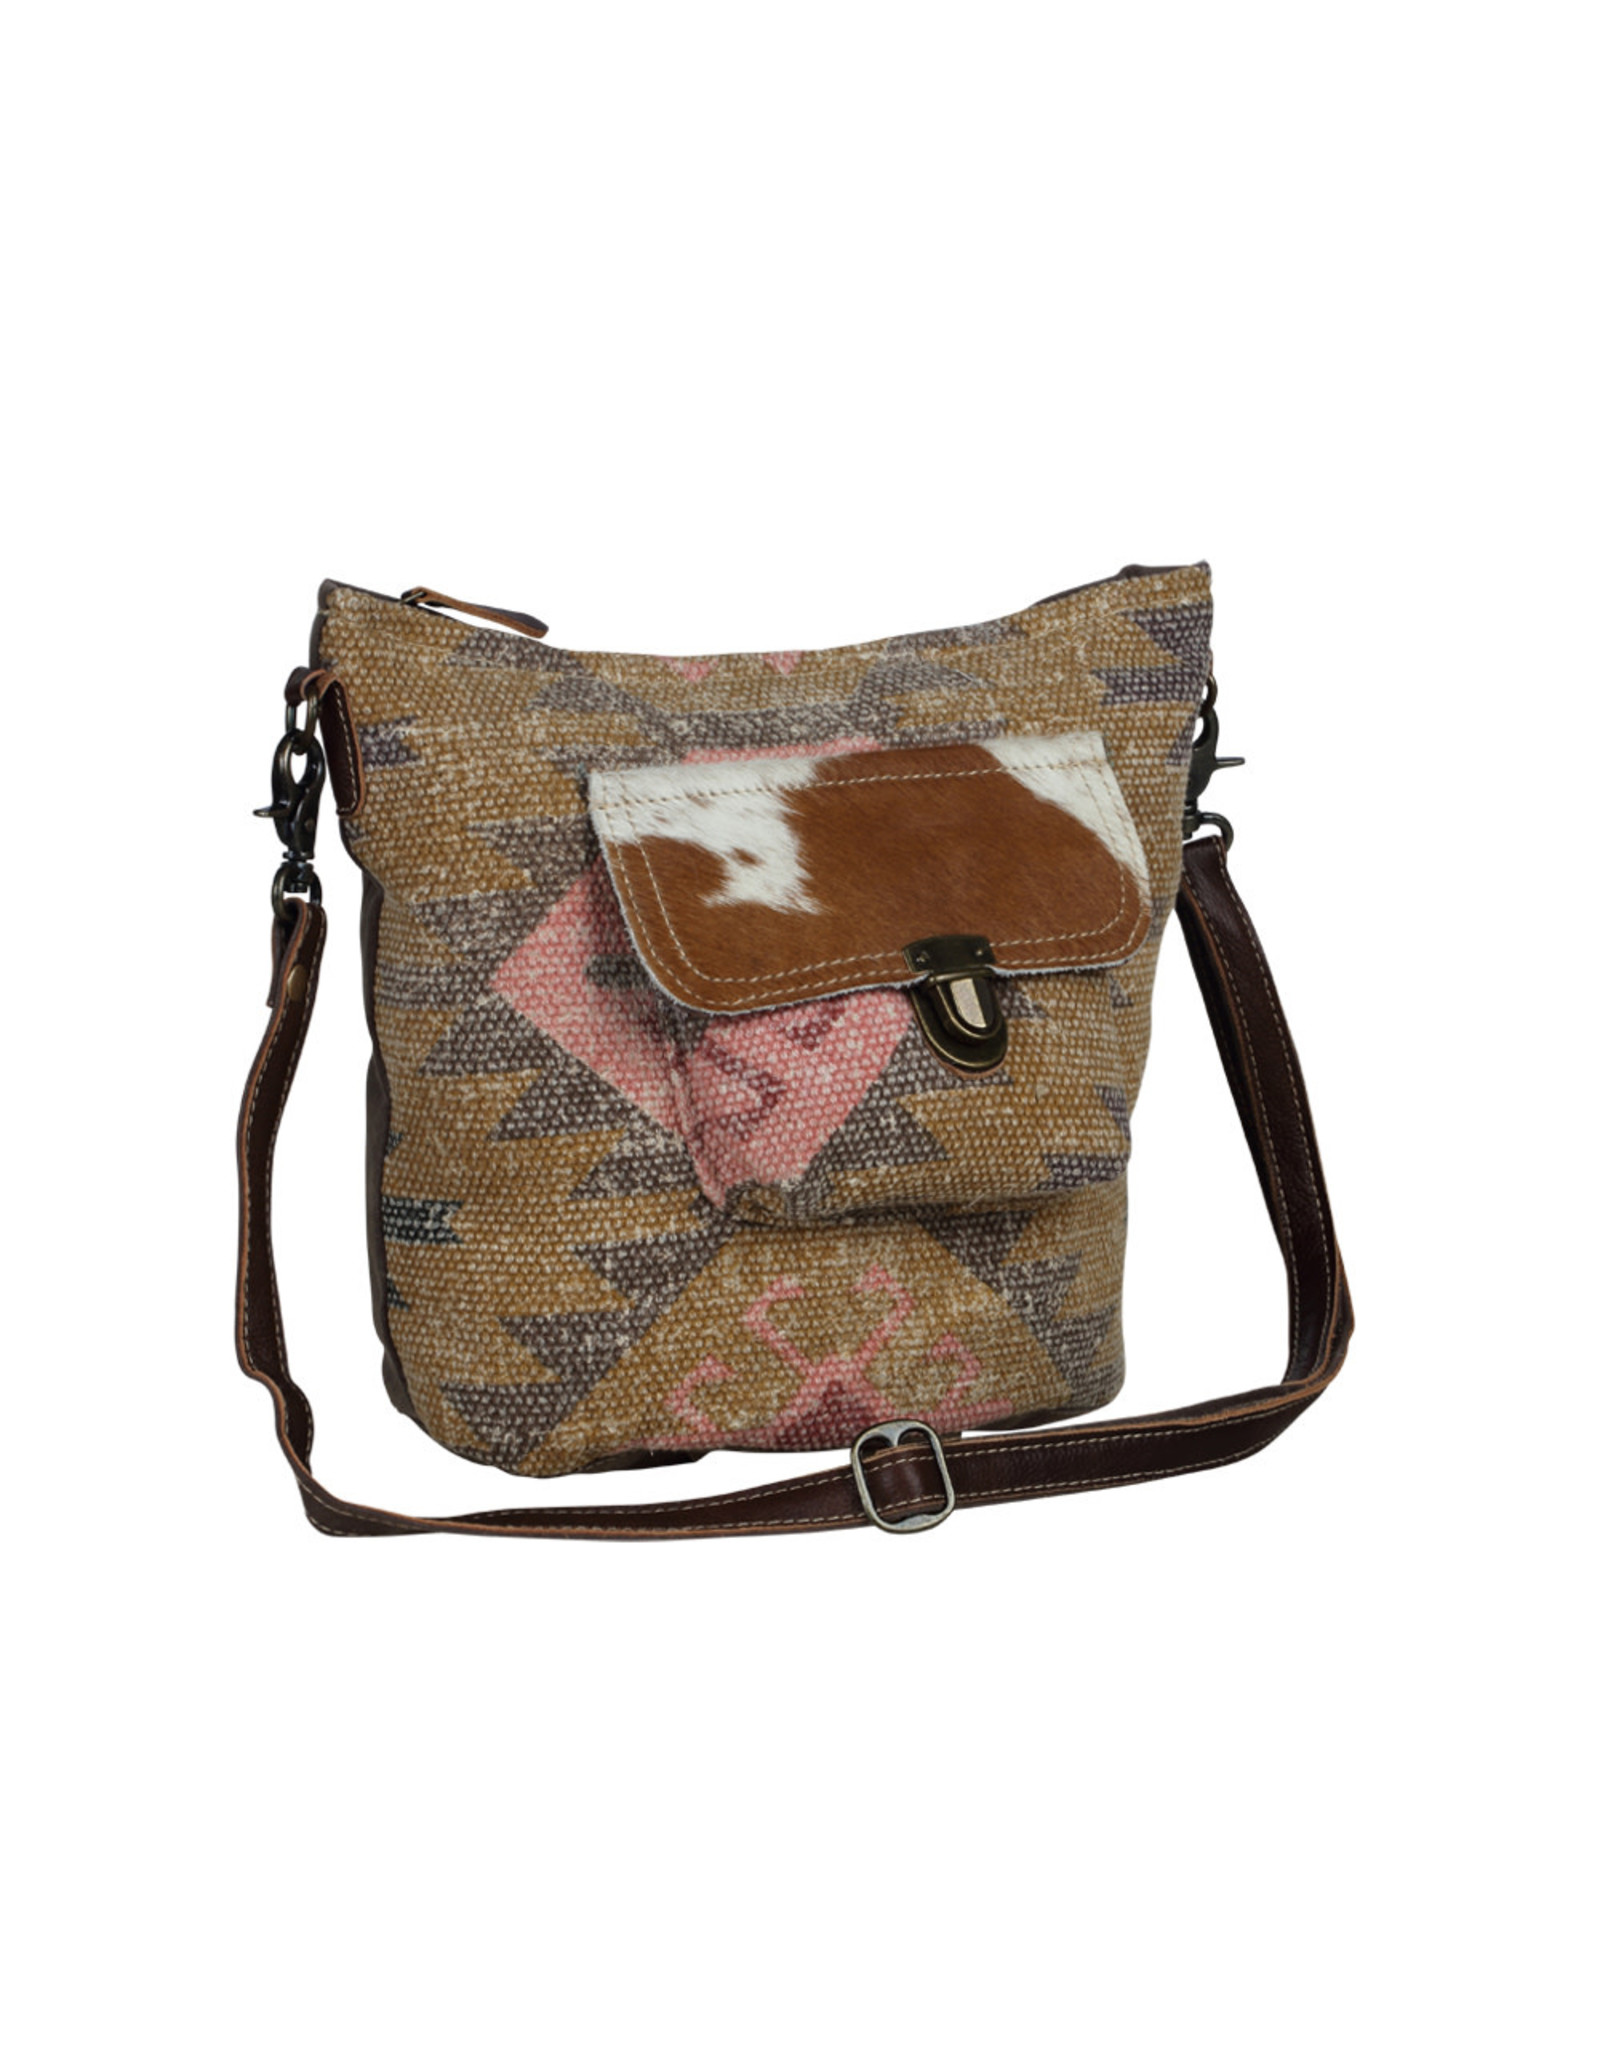 Myra Bags S-2070 Ruffled Shoulder Bag